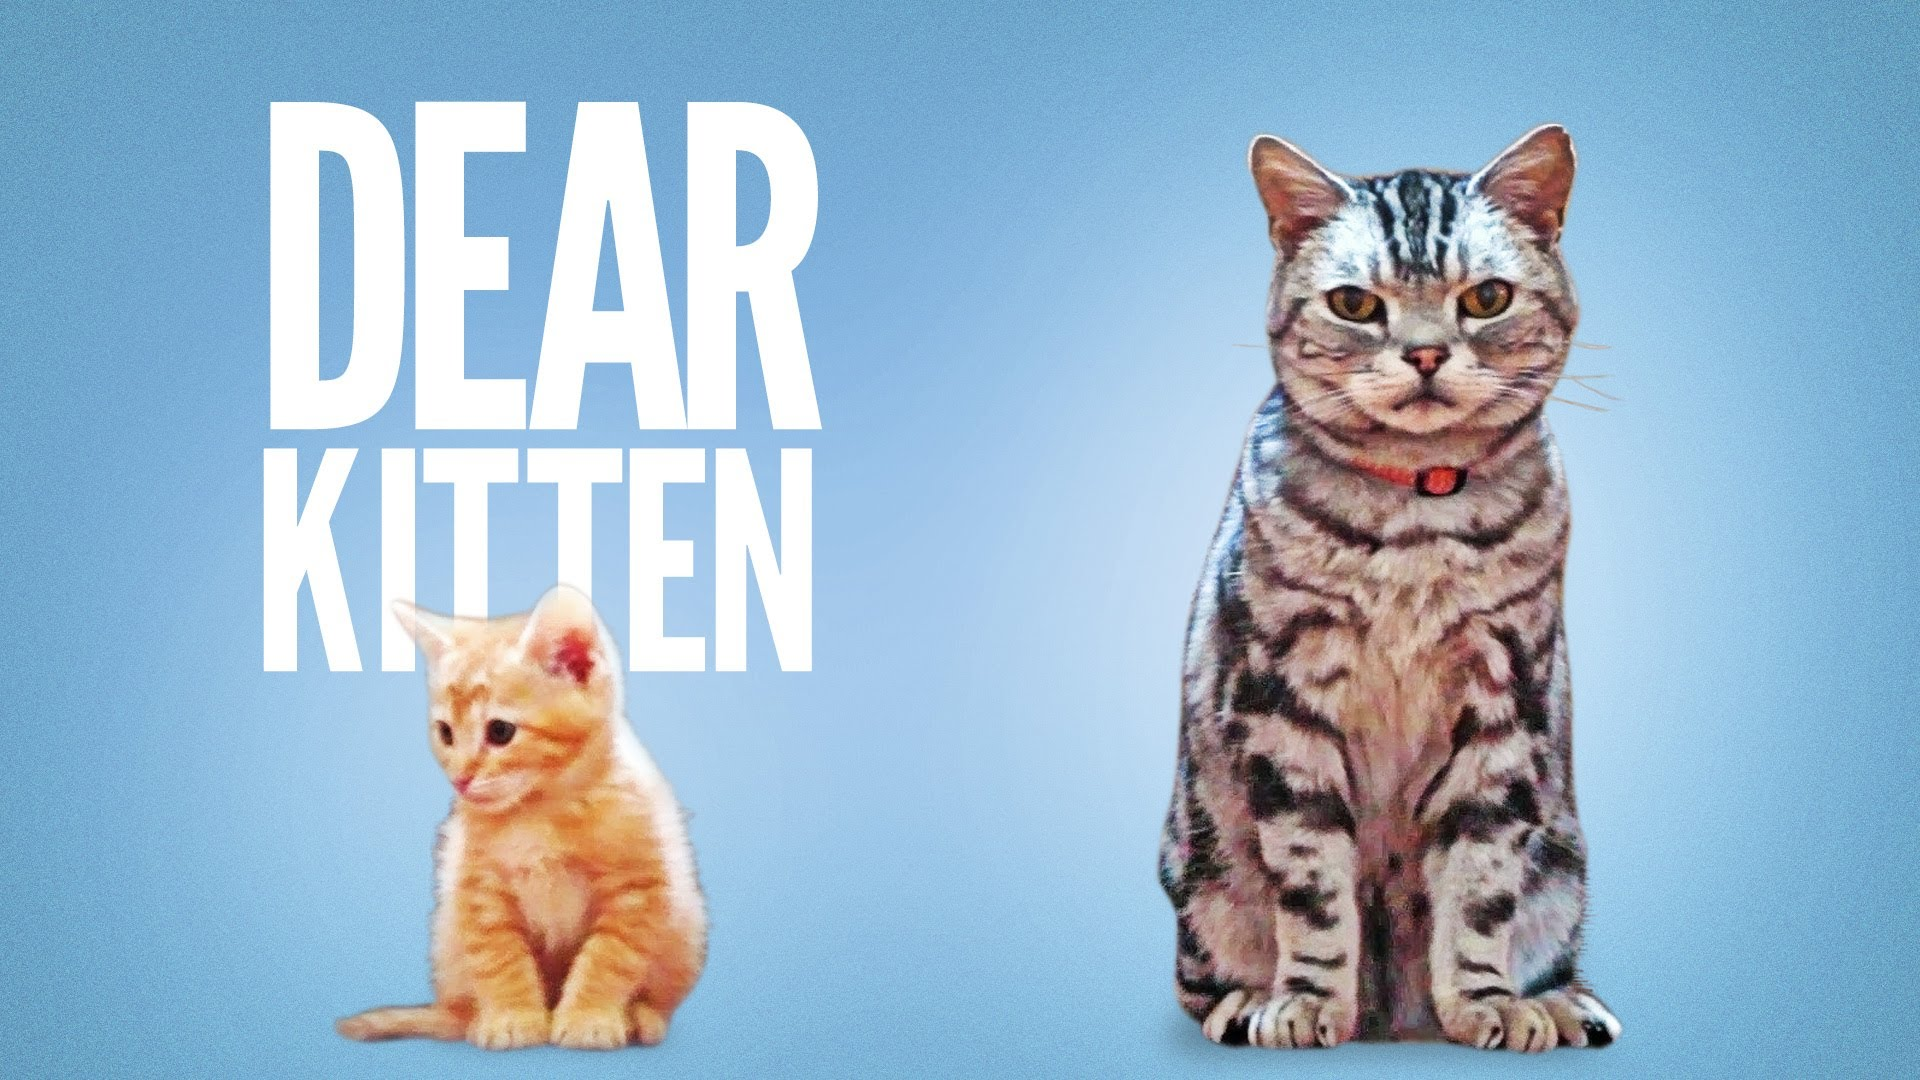 Dear Kitten, A Cute Friskies Ad Narrated by Ze Frank About an Adult Cat Welcoming a New Kitten to His Home